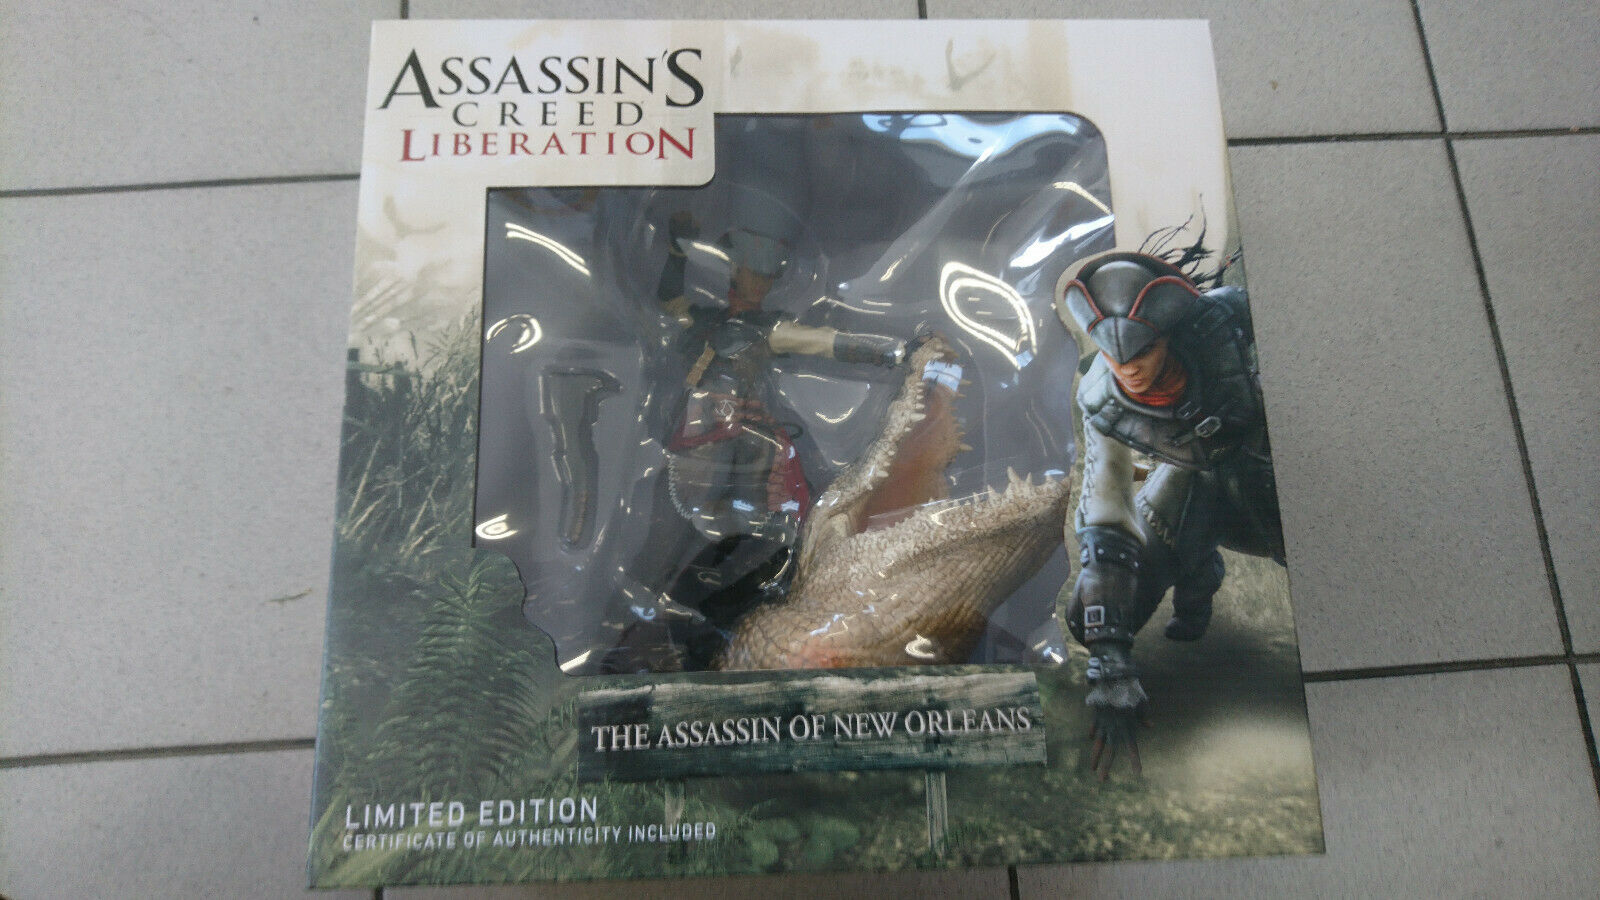 Assassin's Creed Liberation Aveline The Assassin of New Orleans NUMBErot